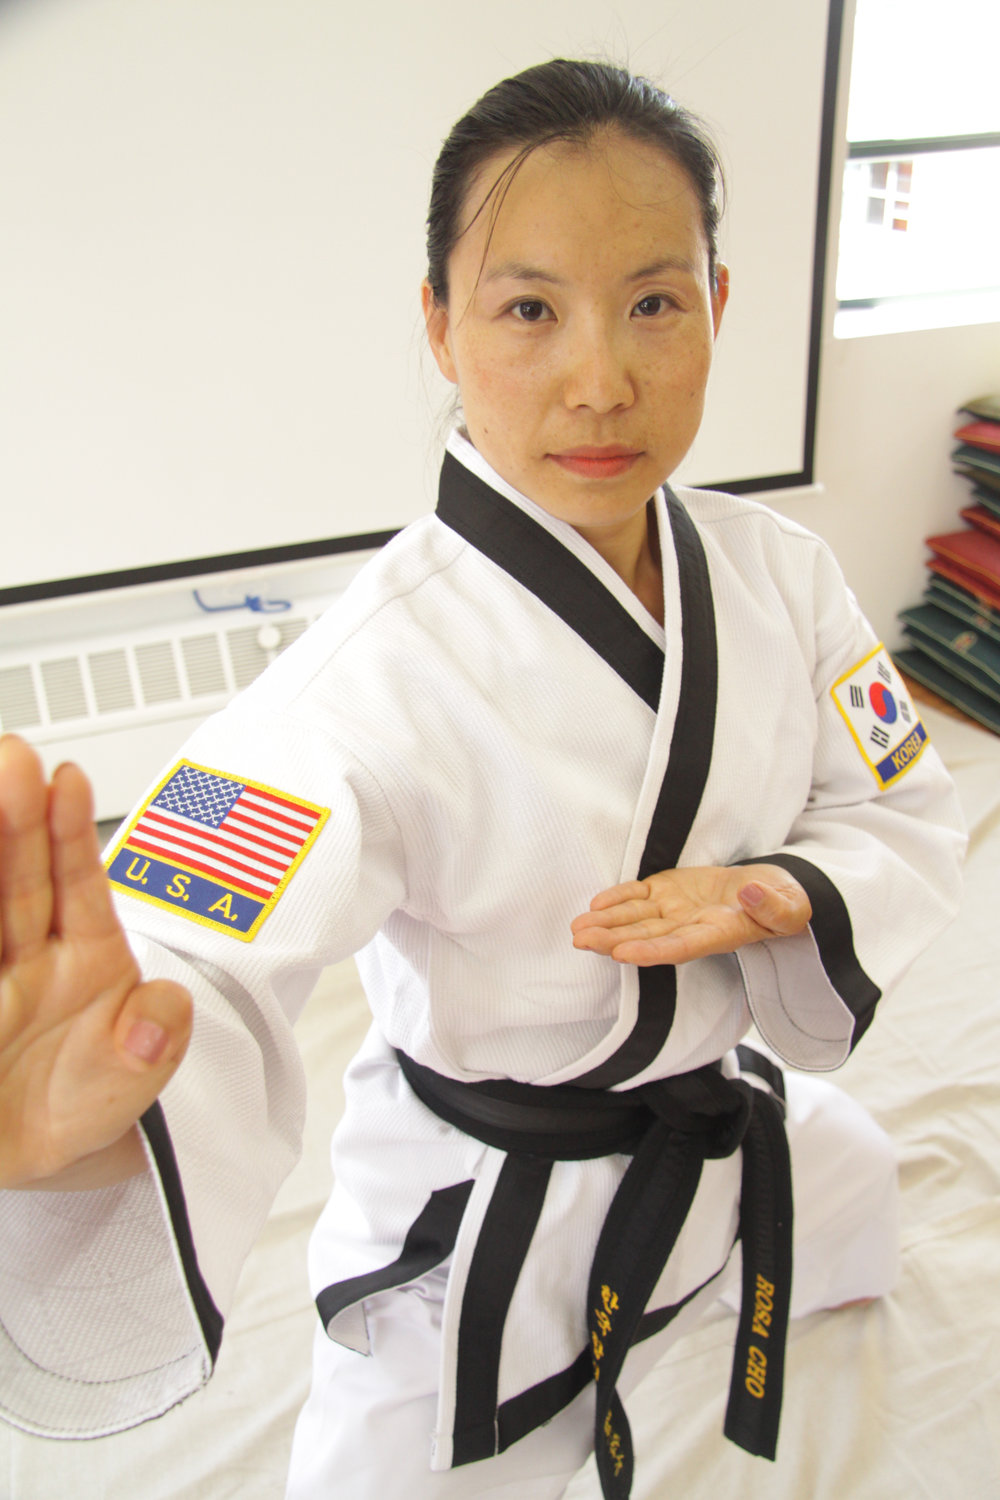 Senior Instructor Rosa J. Cho  has been studying HapKiDo under Master Herbert at WMAC since 2001 and is a 2nd degree black belt.  She has also studied wushu, kickboxing, yoga and swing dancing. Believing in the power of achieving health through empowering one's mind, body and soul, she brings a lot of positive energy and enthusiasm to every class and cares for each student's paths to well-being and empowerment. Rosa recently earned a Ph.D from the NYU Silver School of Social Work, and is working on socioeconomic justice and women's rights issues.